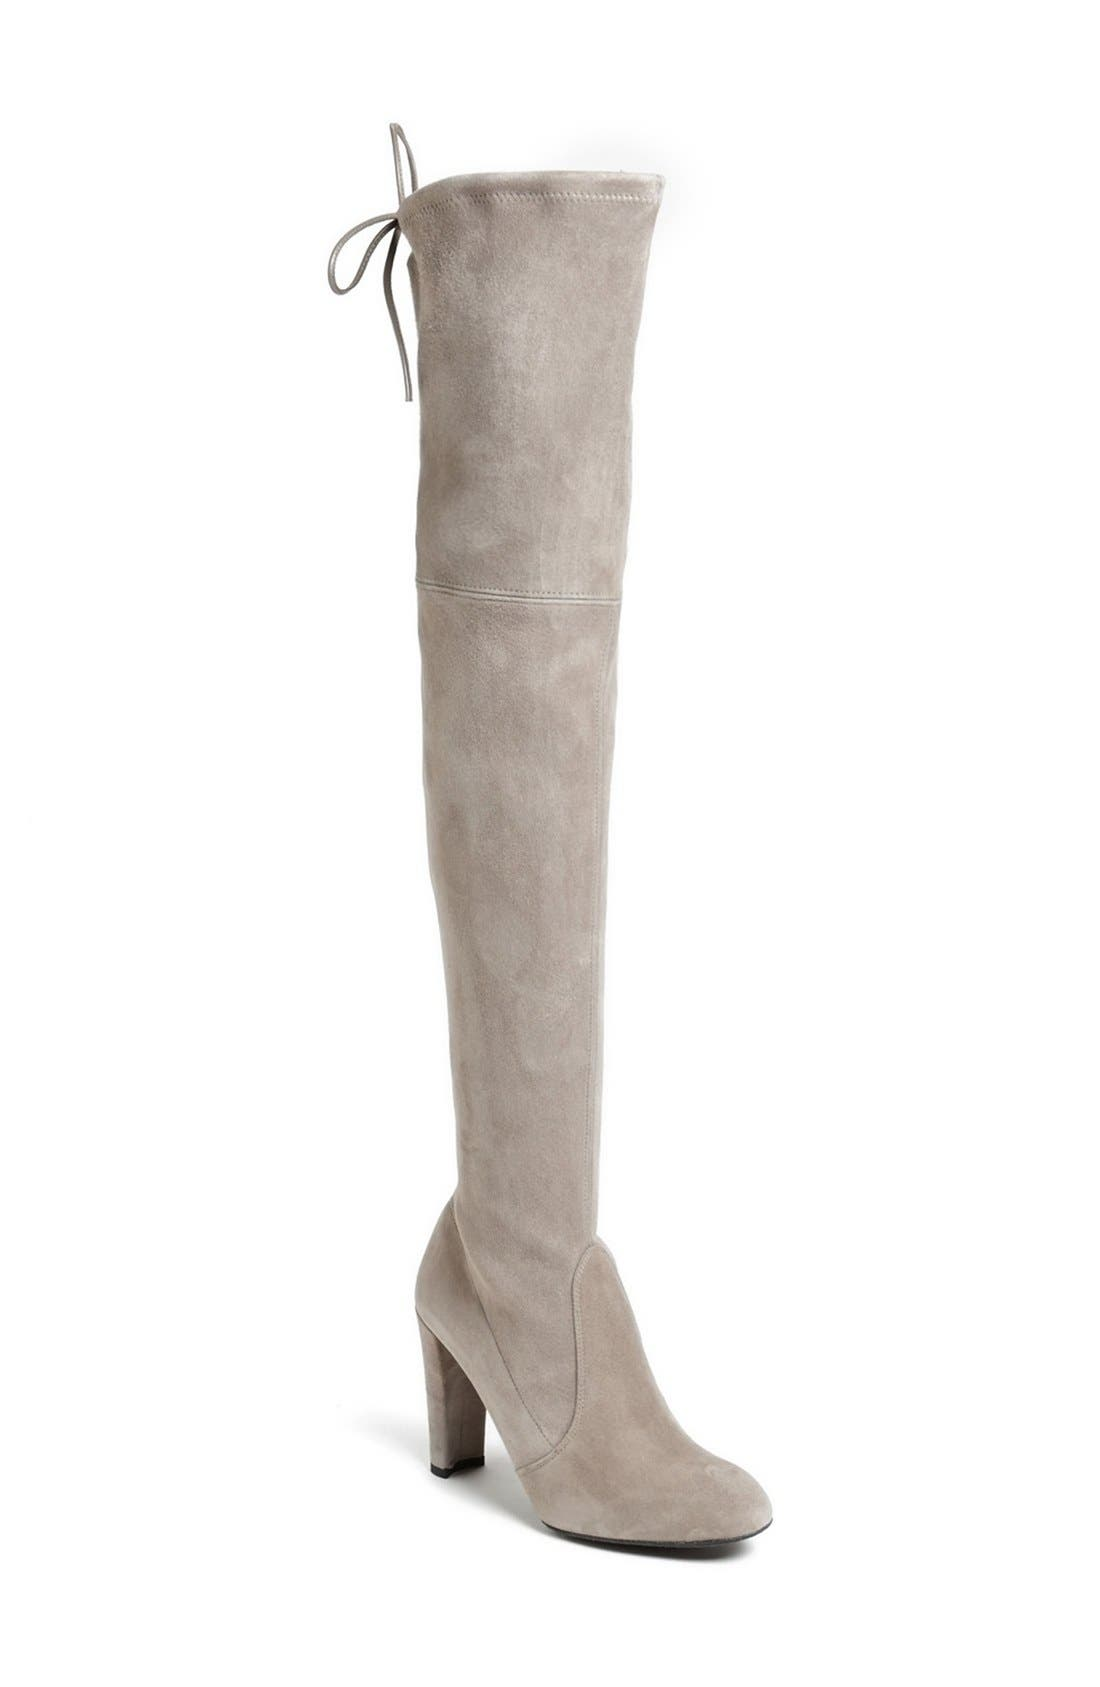 Main Image - Stuart Weitzman 'Highland' Over the Knee Boot (Women)